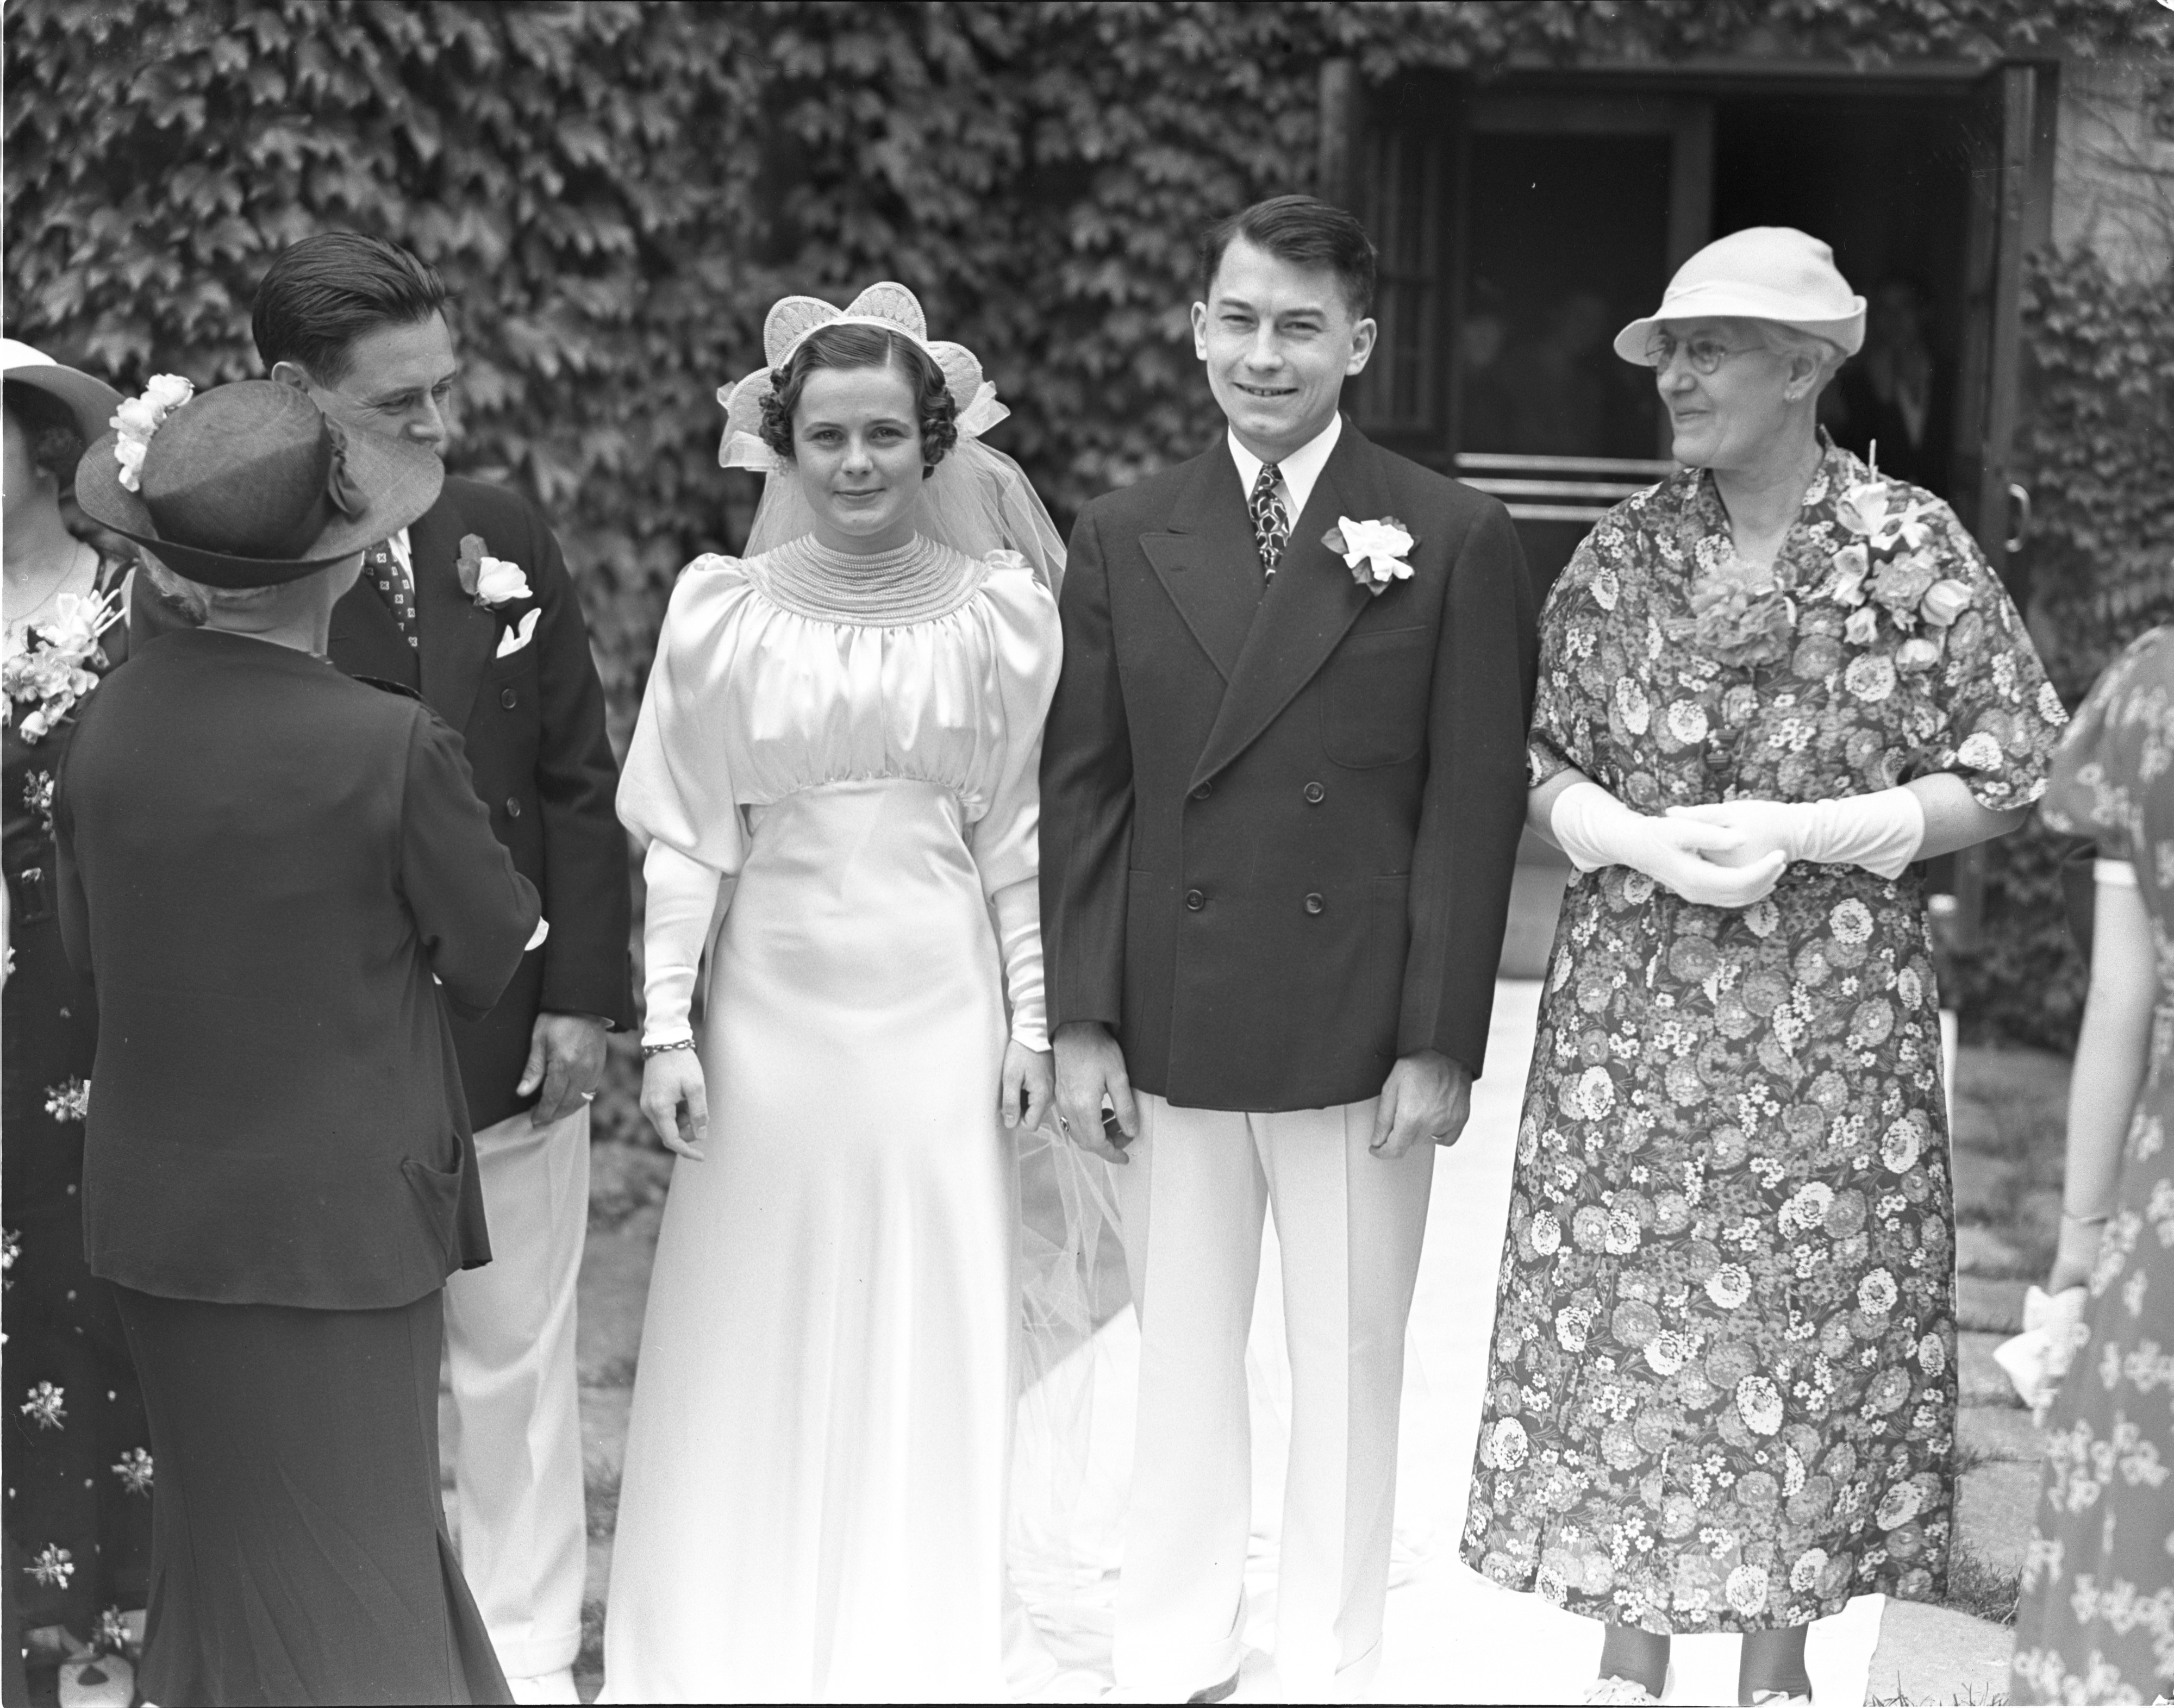 Just Married In The Garden Of The Michigan League, Virginia & William Umbach - June 16, 1937 image